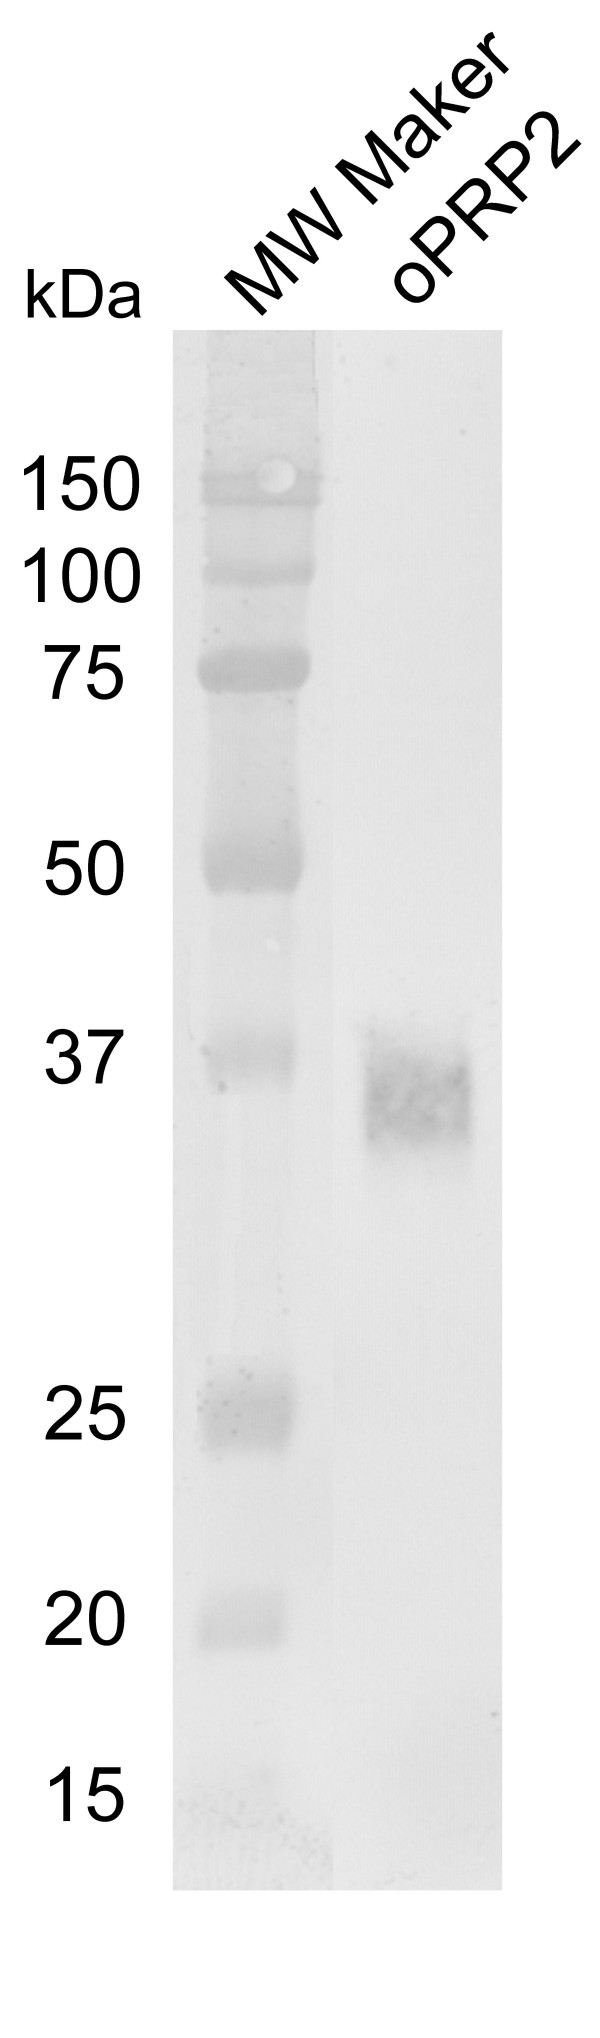 Western blot analysis of recombinant FLAG-tag fusion oPRP2 protein . Conditioned media from HEK 293 cells transiently transfected with each gene were collected, and the purified proteins (1 ng) were loaded on to separate lanes. The proteins were separated by SDS-PAGE and specific proteins were detected by Western blot analysis using an anti-FLAG antibody. MW Marker: molecular weight marker.